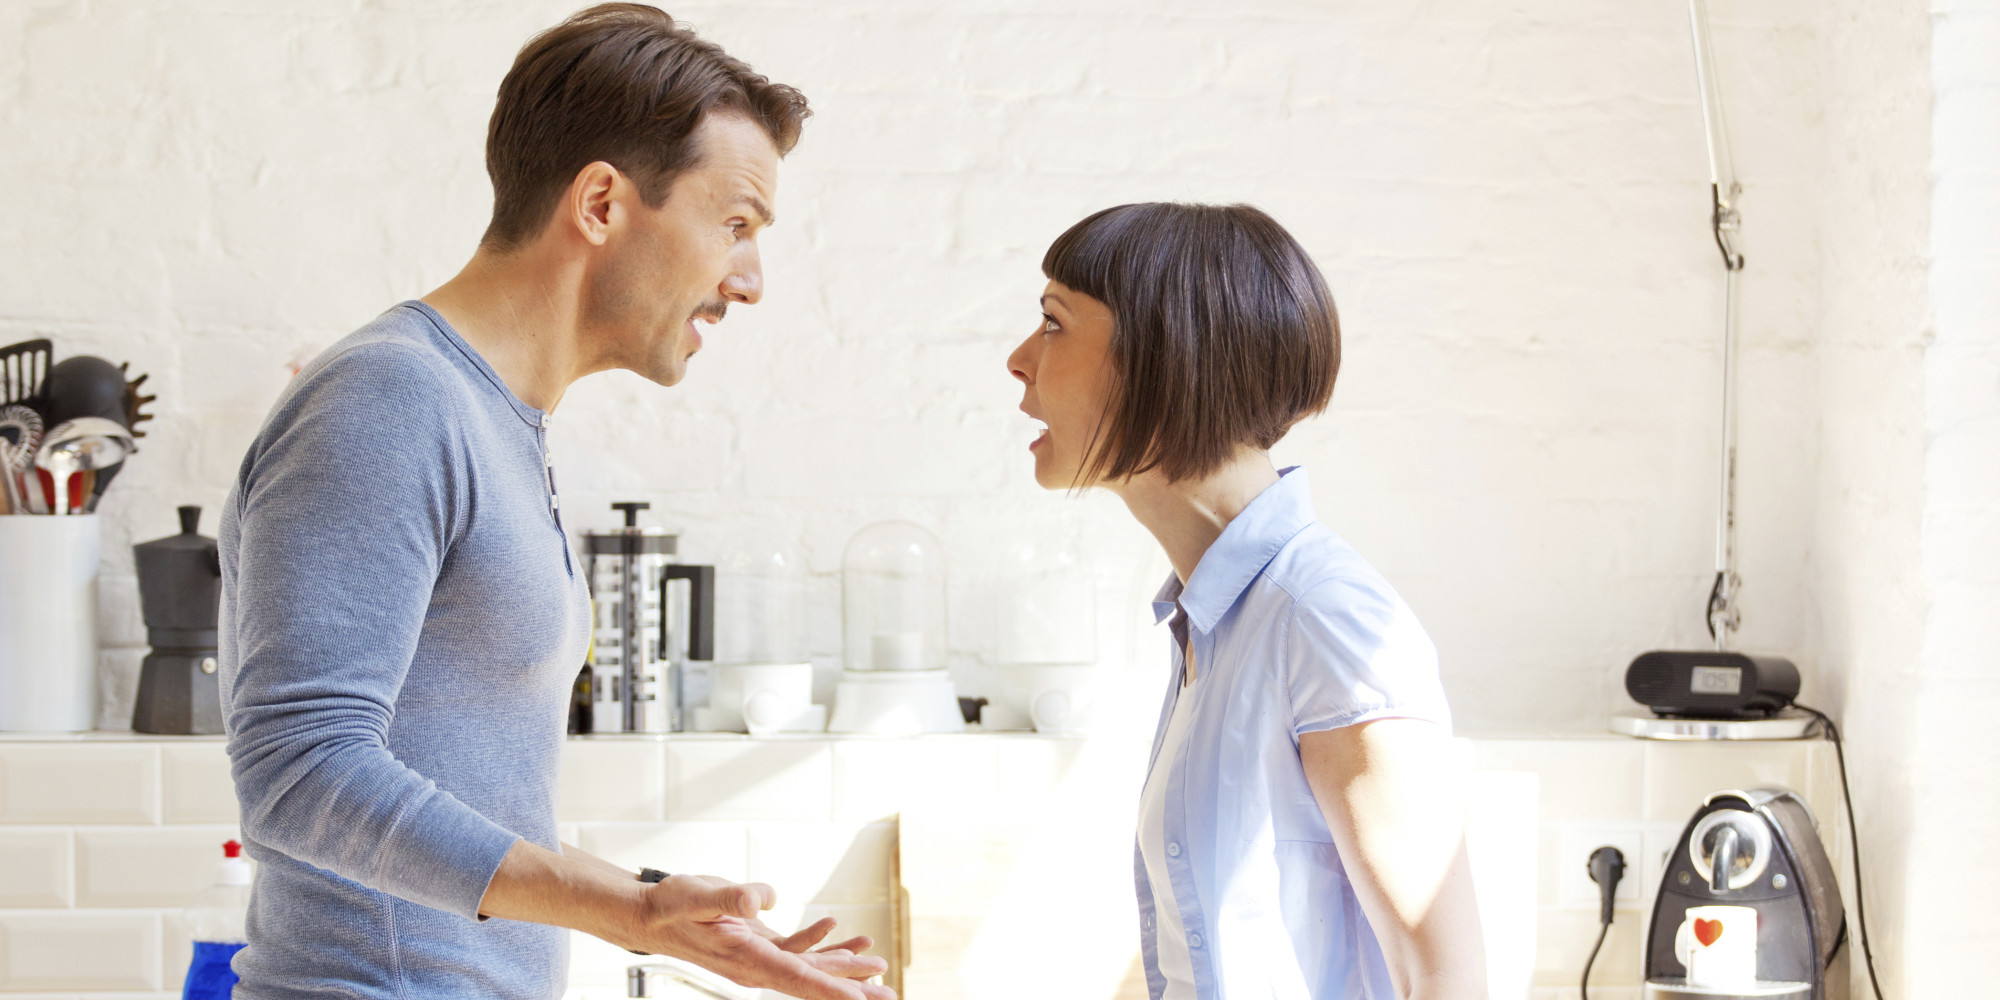 Couple arguing in a kitchen